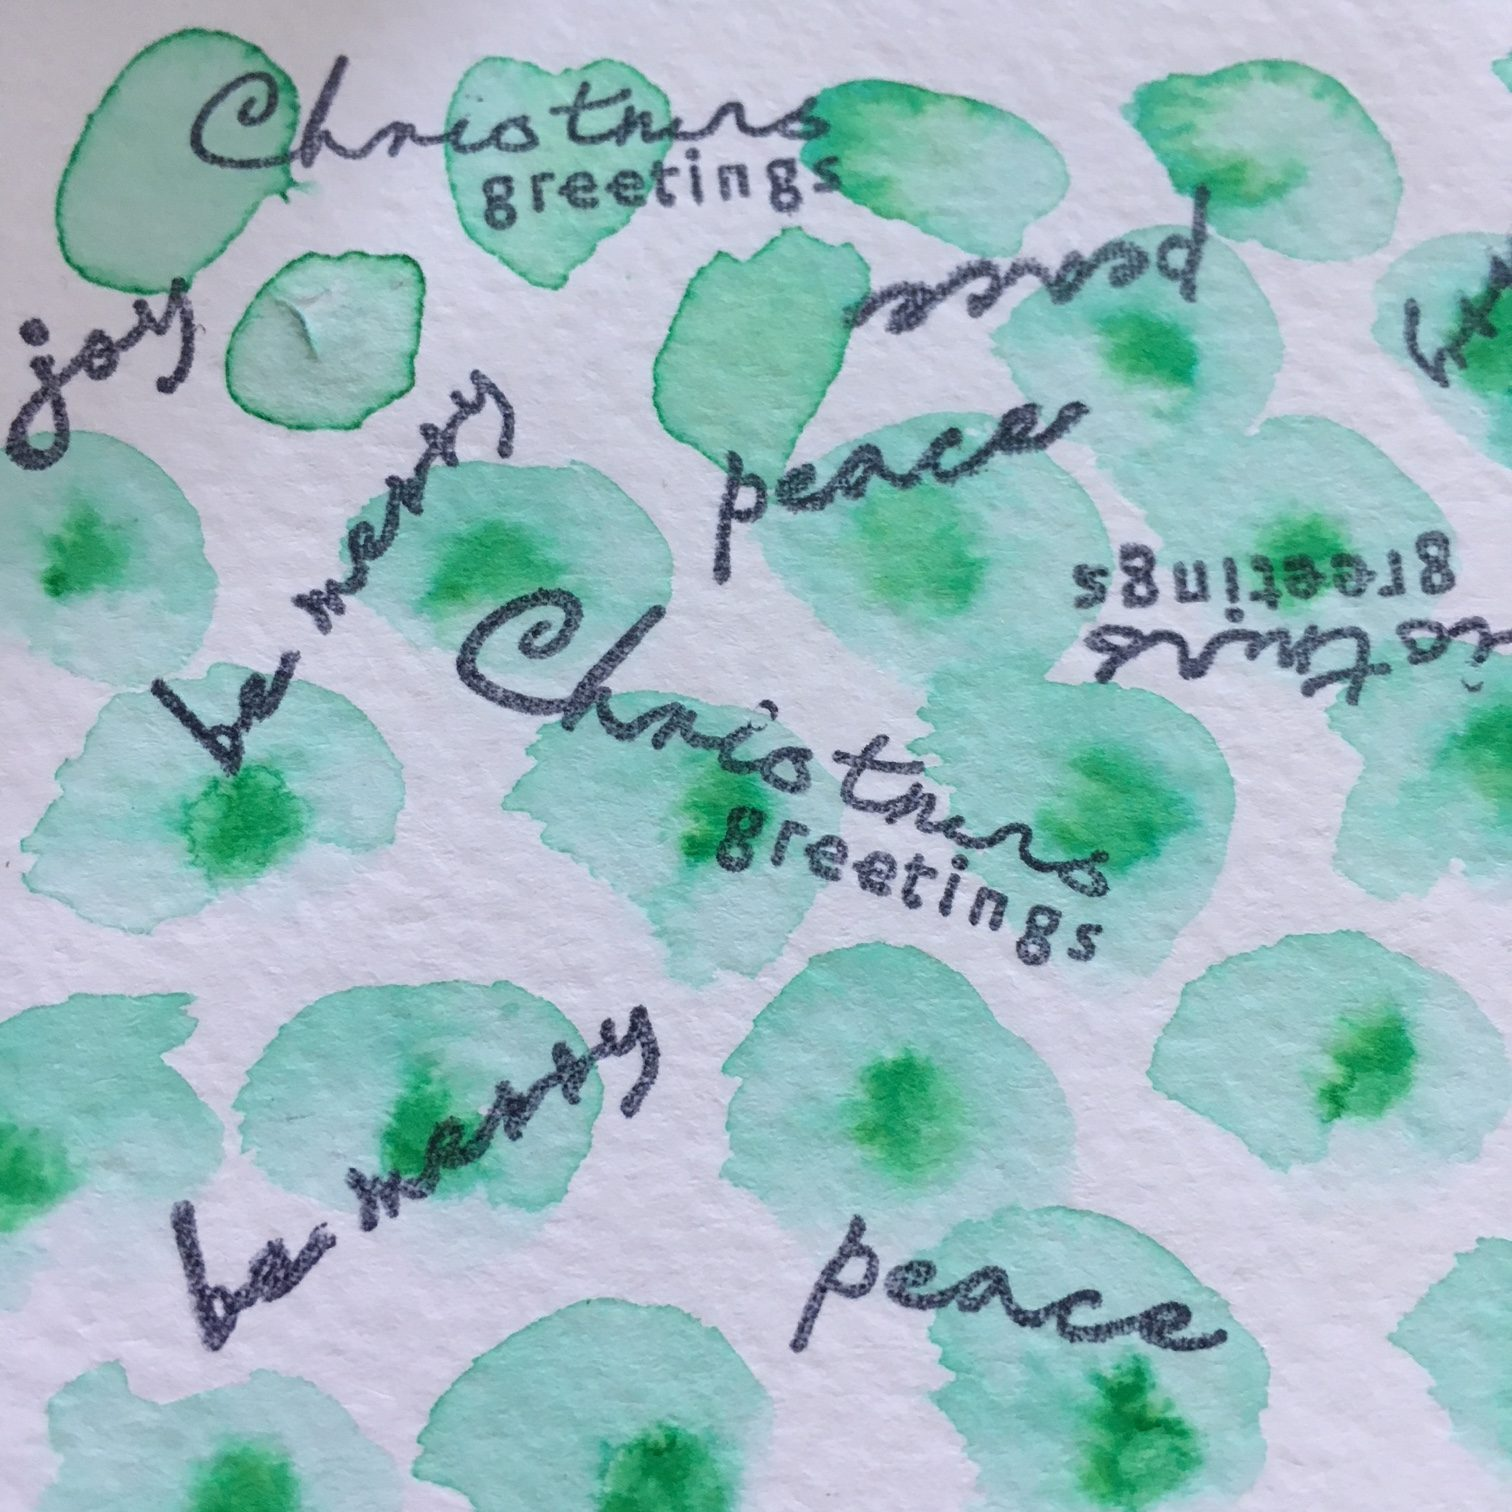 watercolour painted design with Christmas stamps